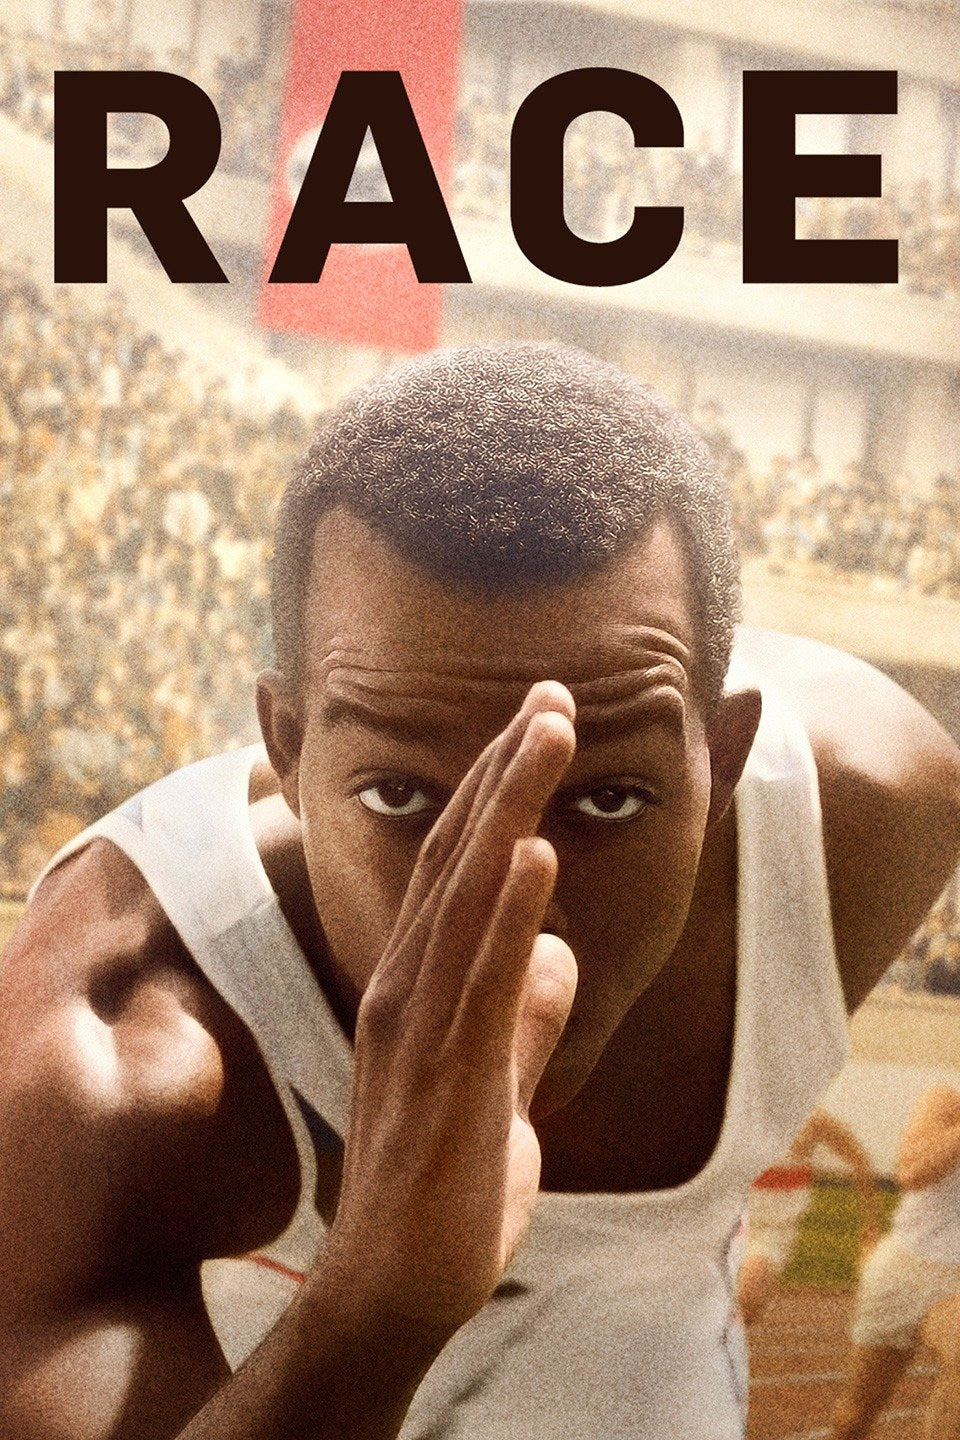 Race iTunes HD redemption only